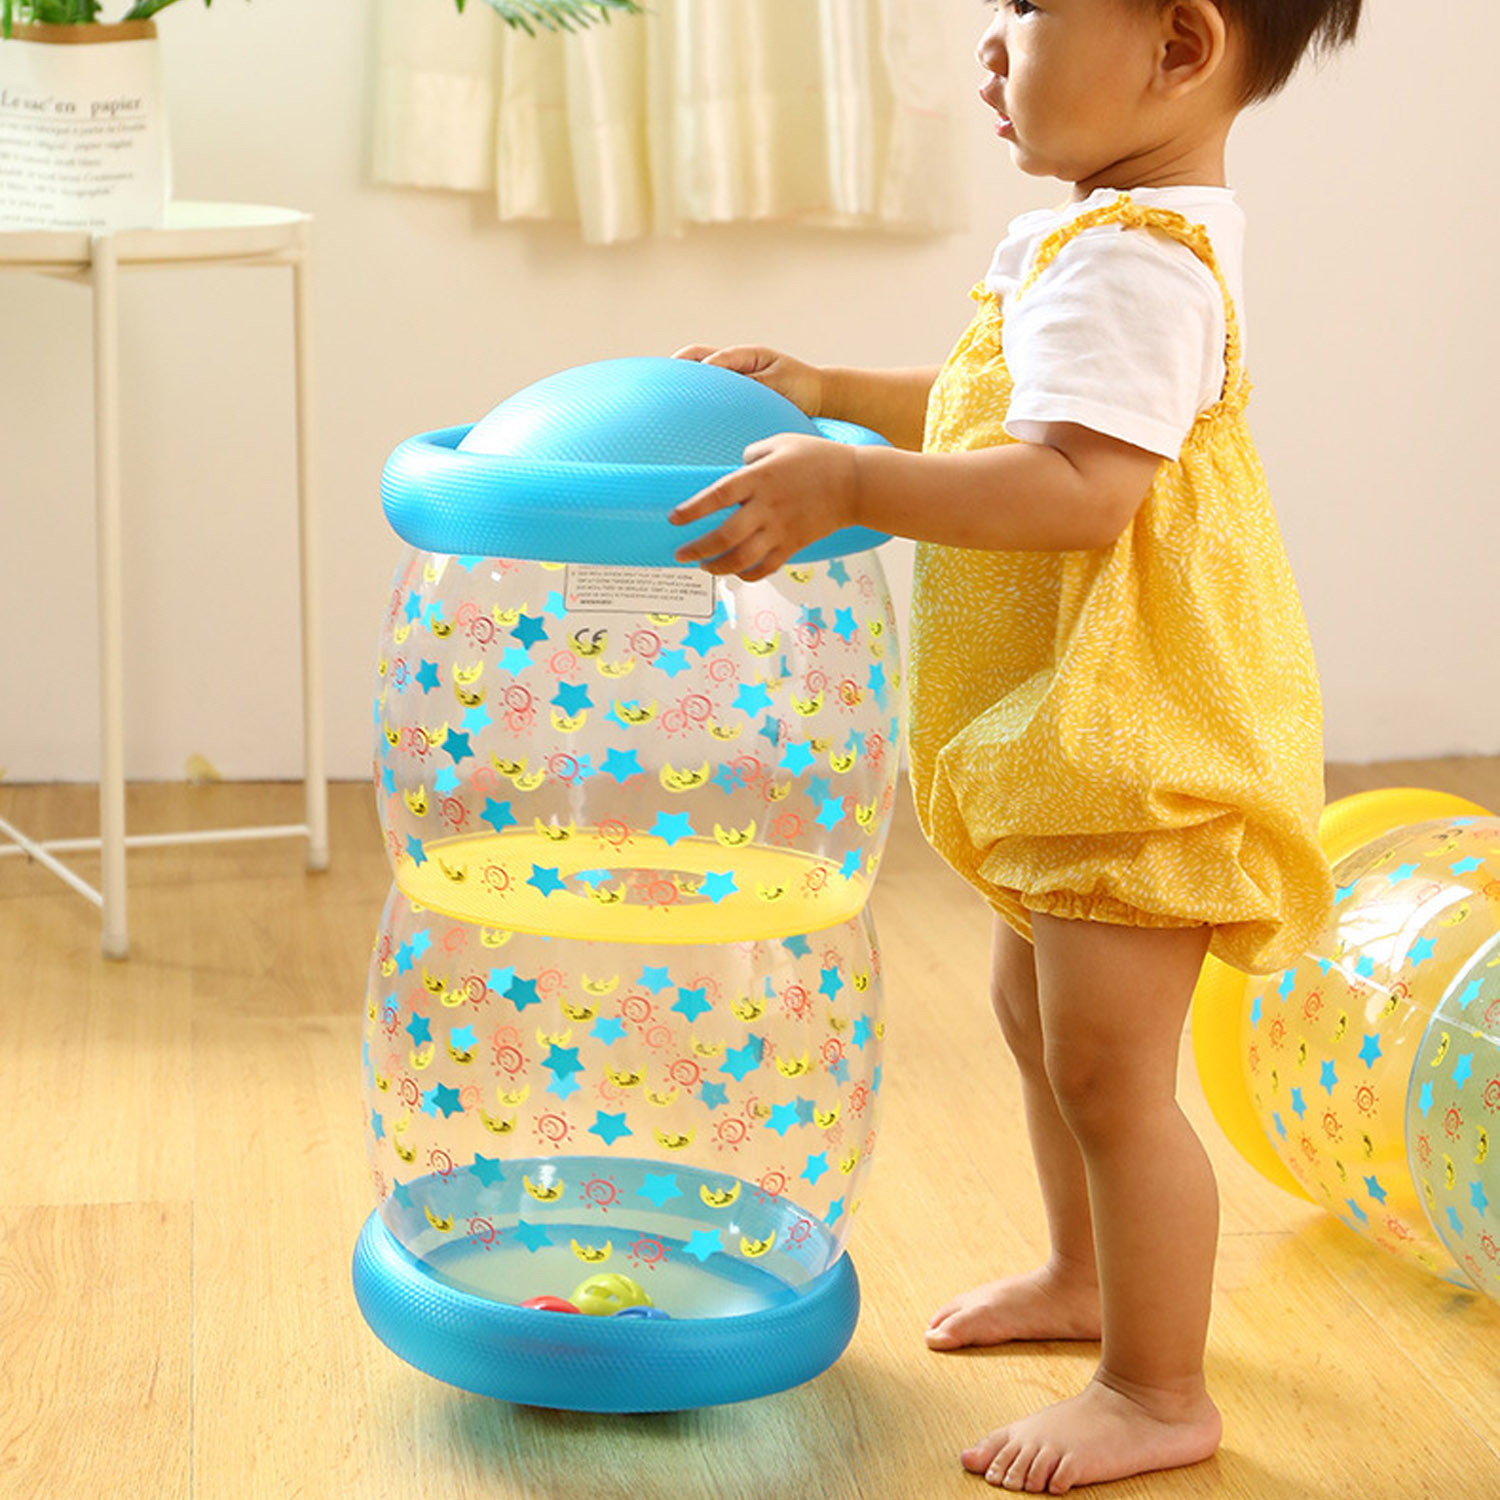 Newborn Crawling Auxiliary Training Equipment Inflatable Crawling Standing Roller With Bell Ball For 6-36 Month Newborn Toddlers